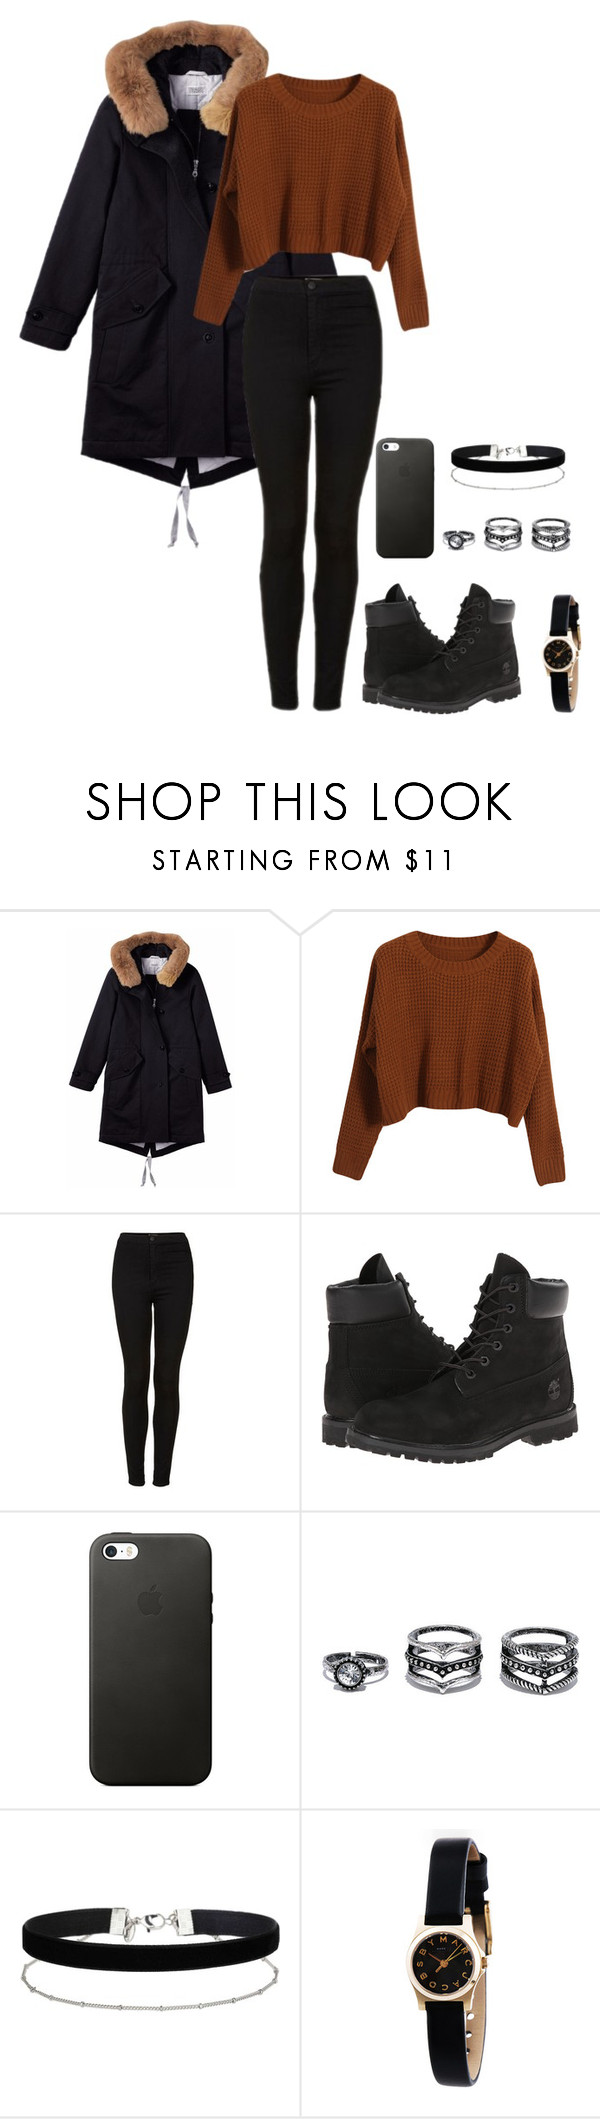 """hold on tight"" by shay-the-turtle on Polyvore featuring Toast, Chicnova Fashion, Topshop, Timberland, LULUS, Miss Selfridge and Marc by Marc Jacobs"